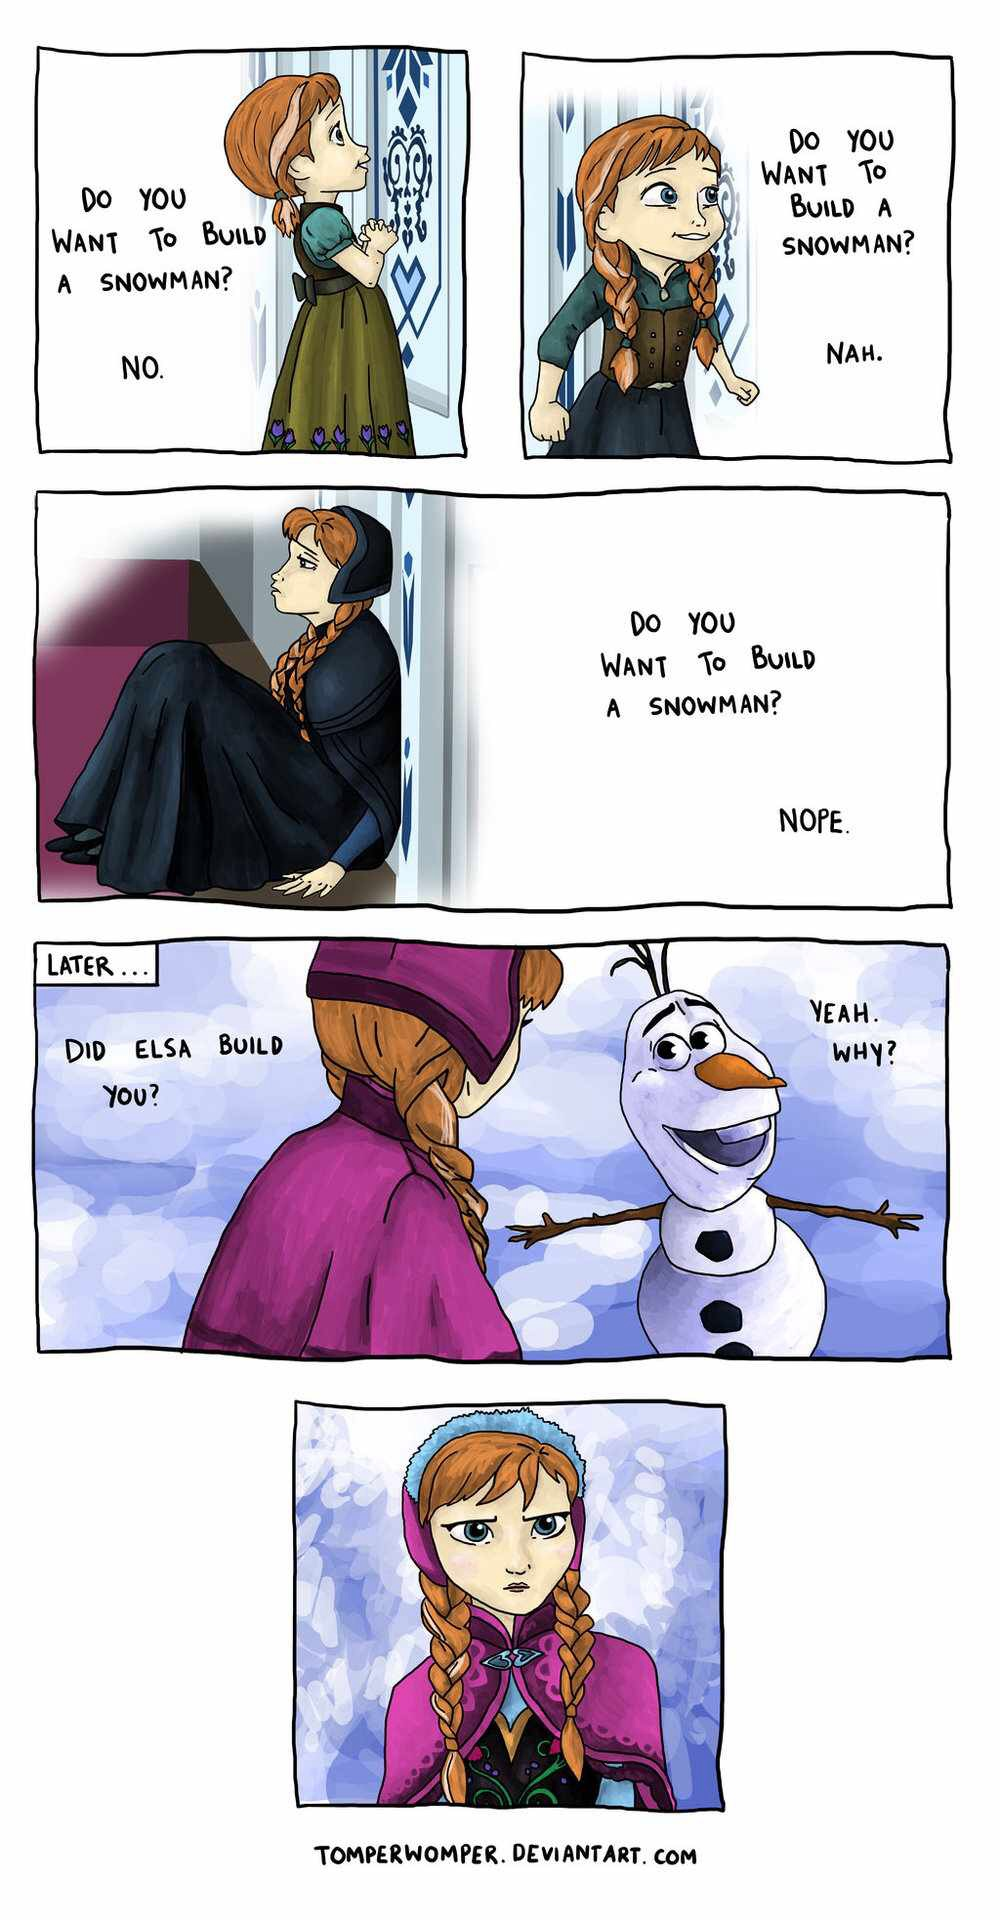 """Do آپ want to build a snowman?"""